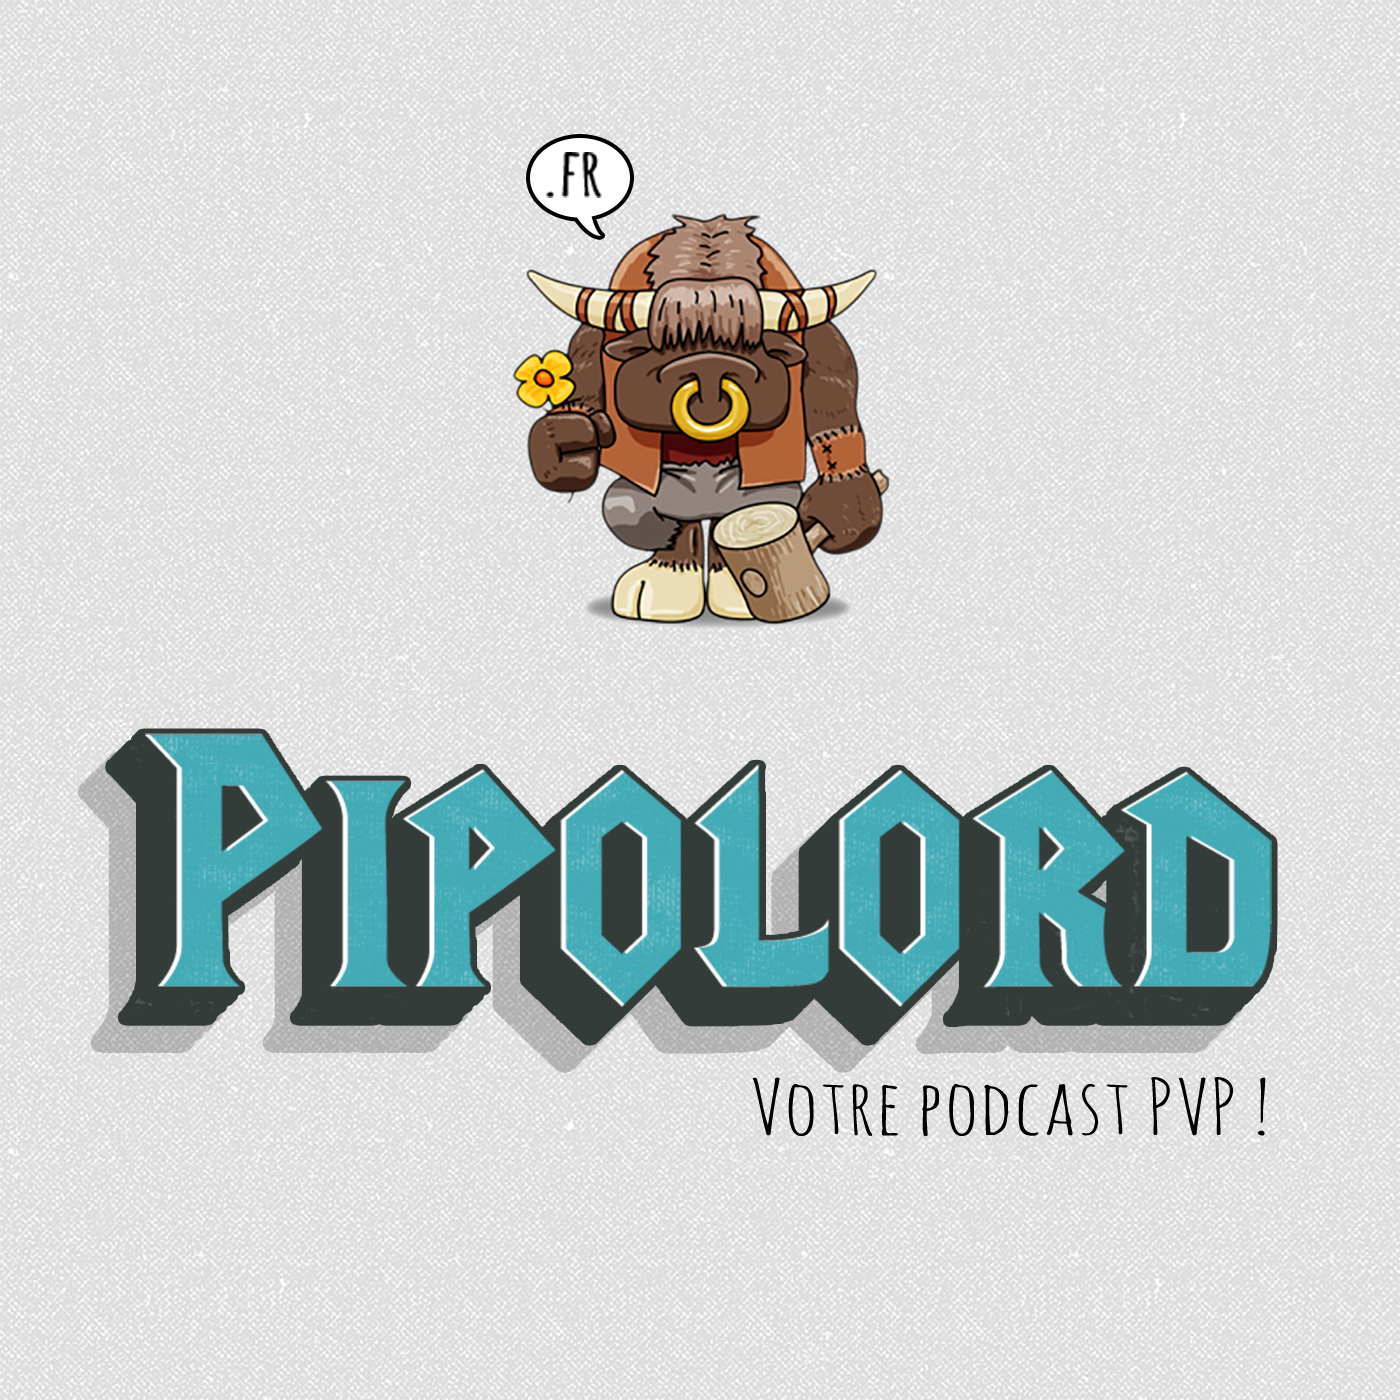 Pipolord